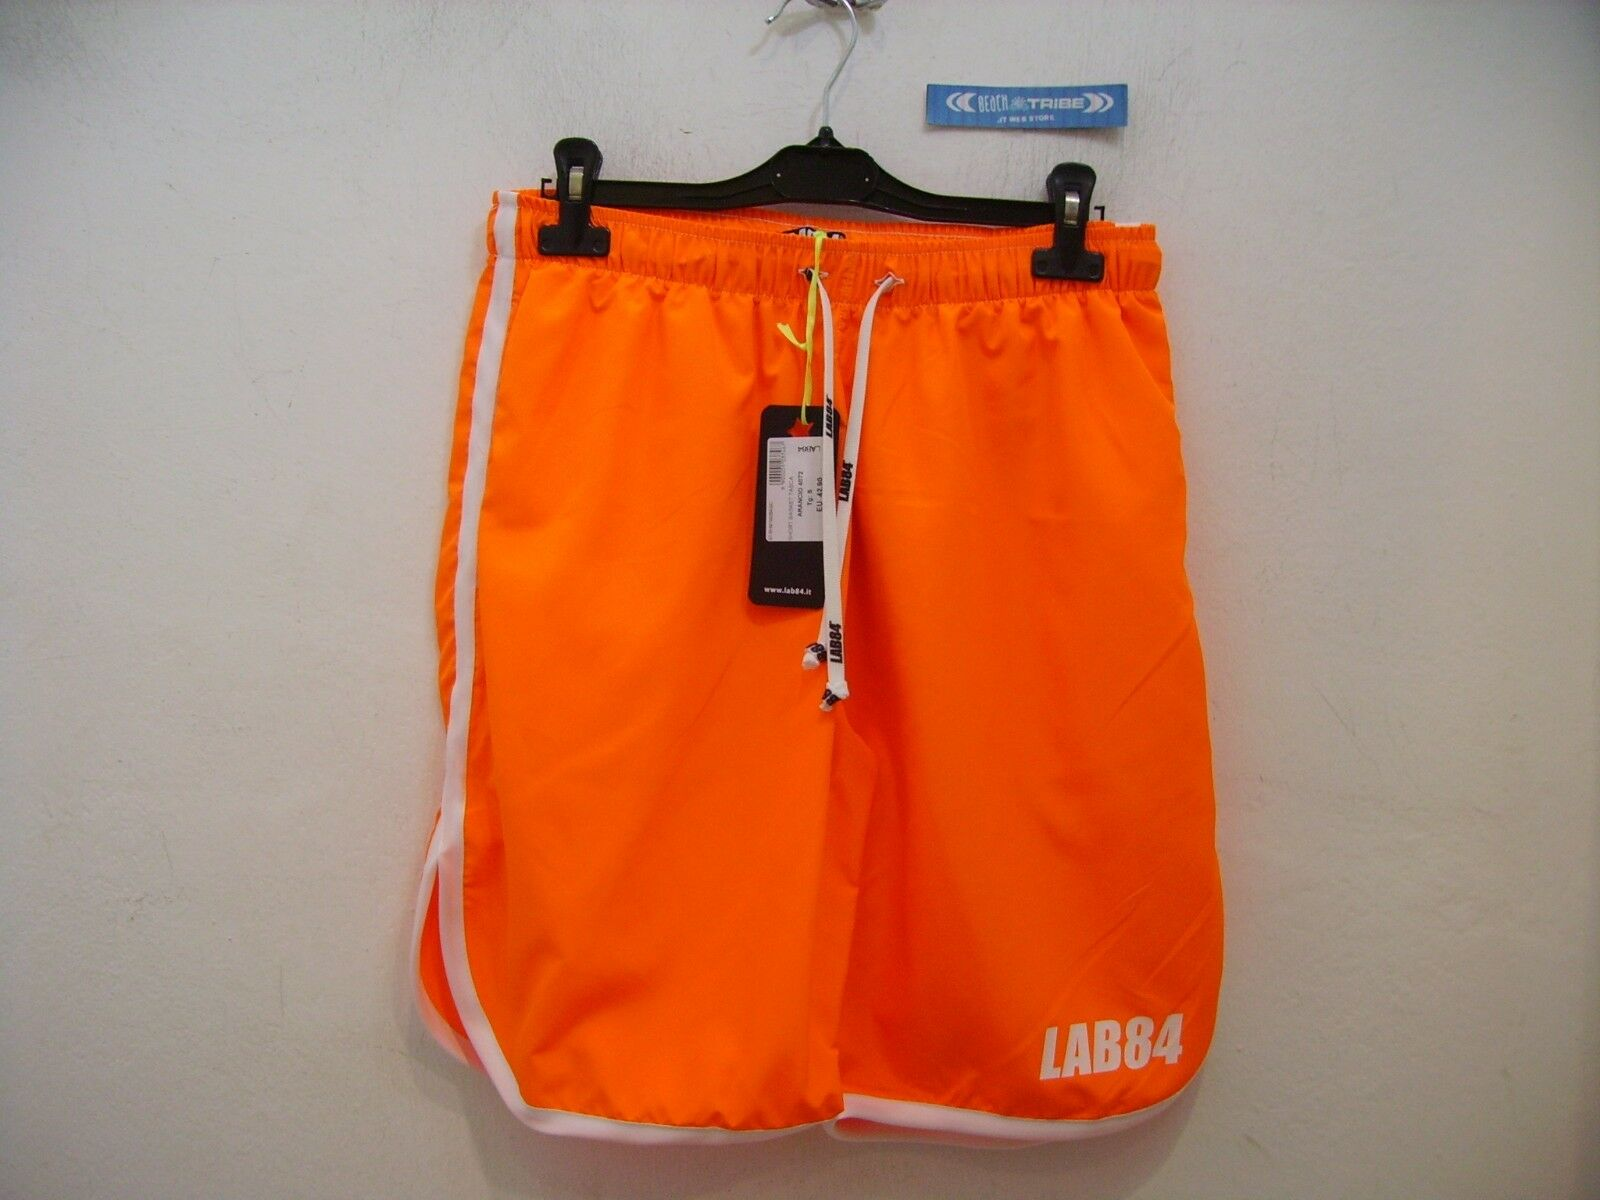 LAB84 SHORTS HERREN SHM1002SPECIAL BASKET TASCHE LANG Orange 4072 GR. S